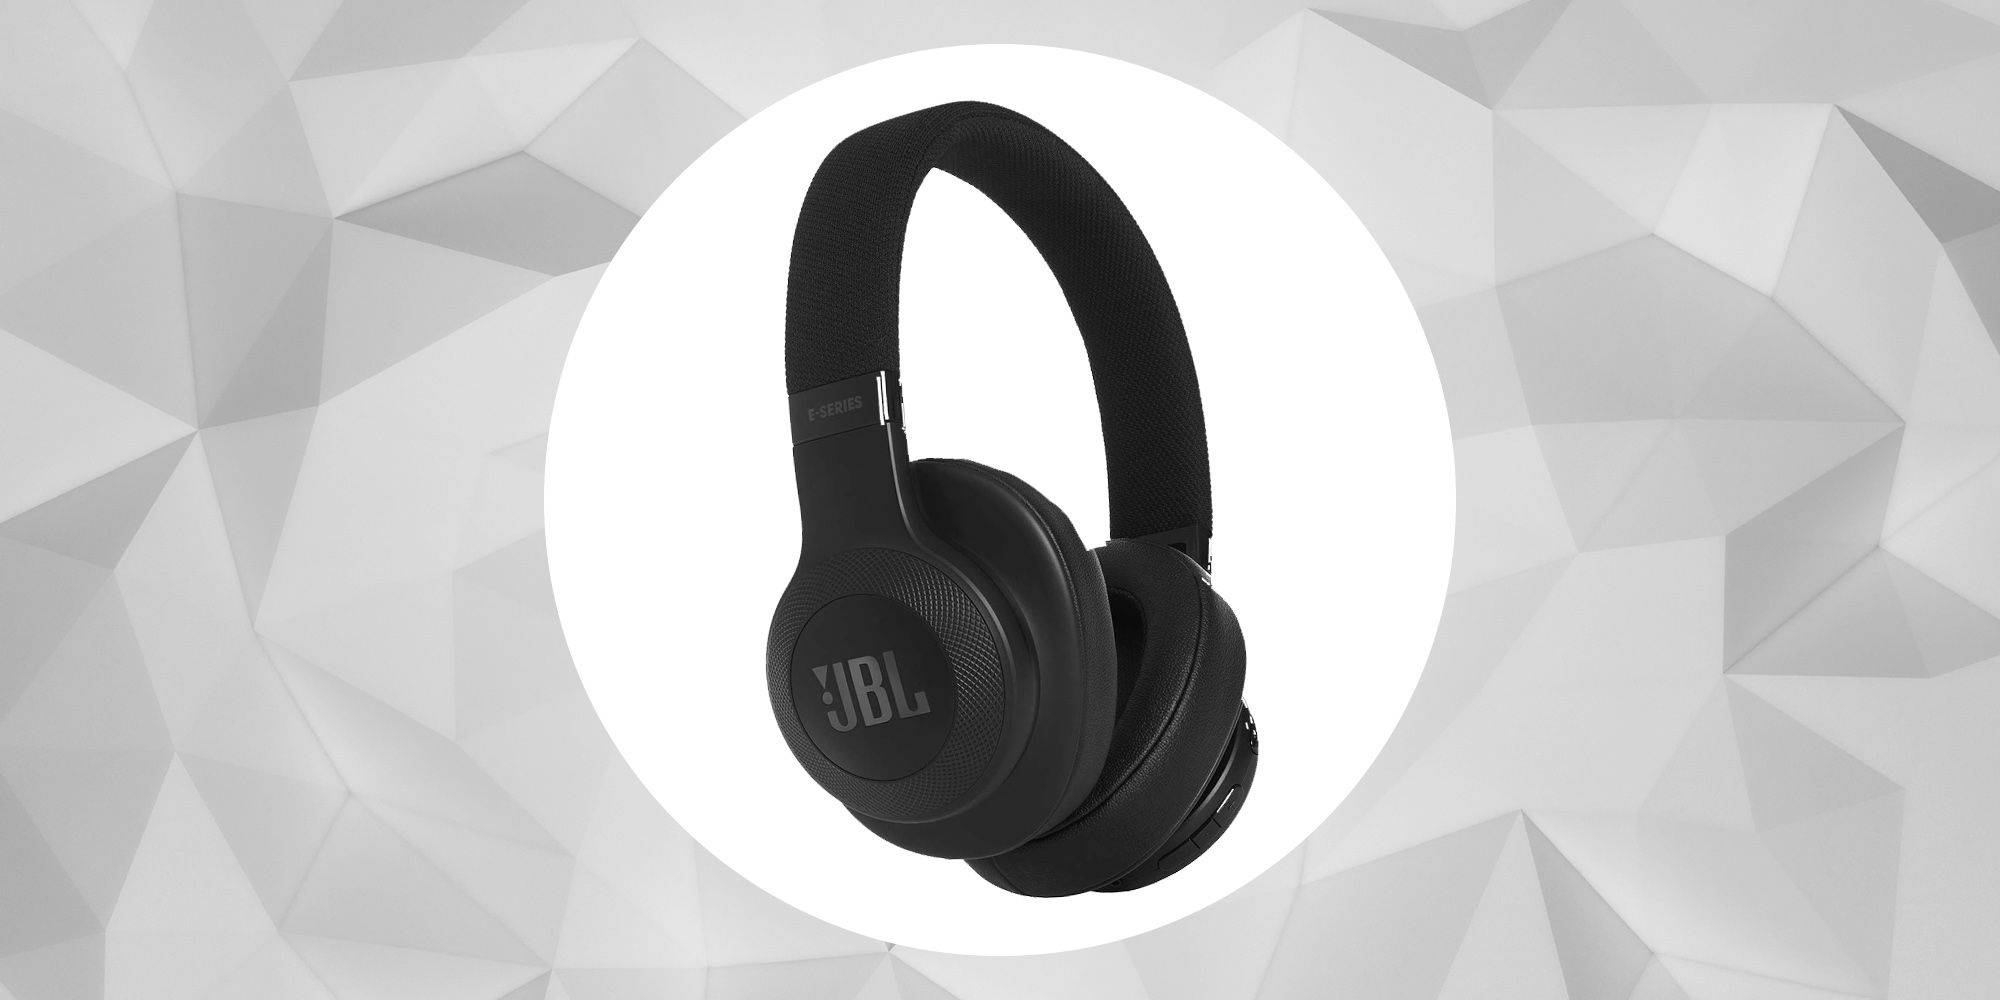 You Need to Check Out Amazon's Sale on These JBL Headphones